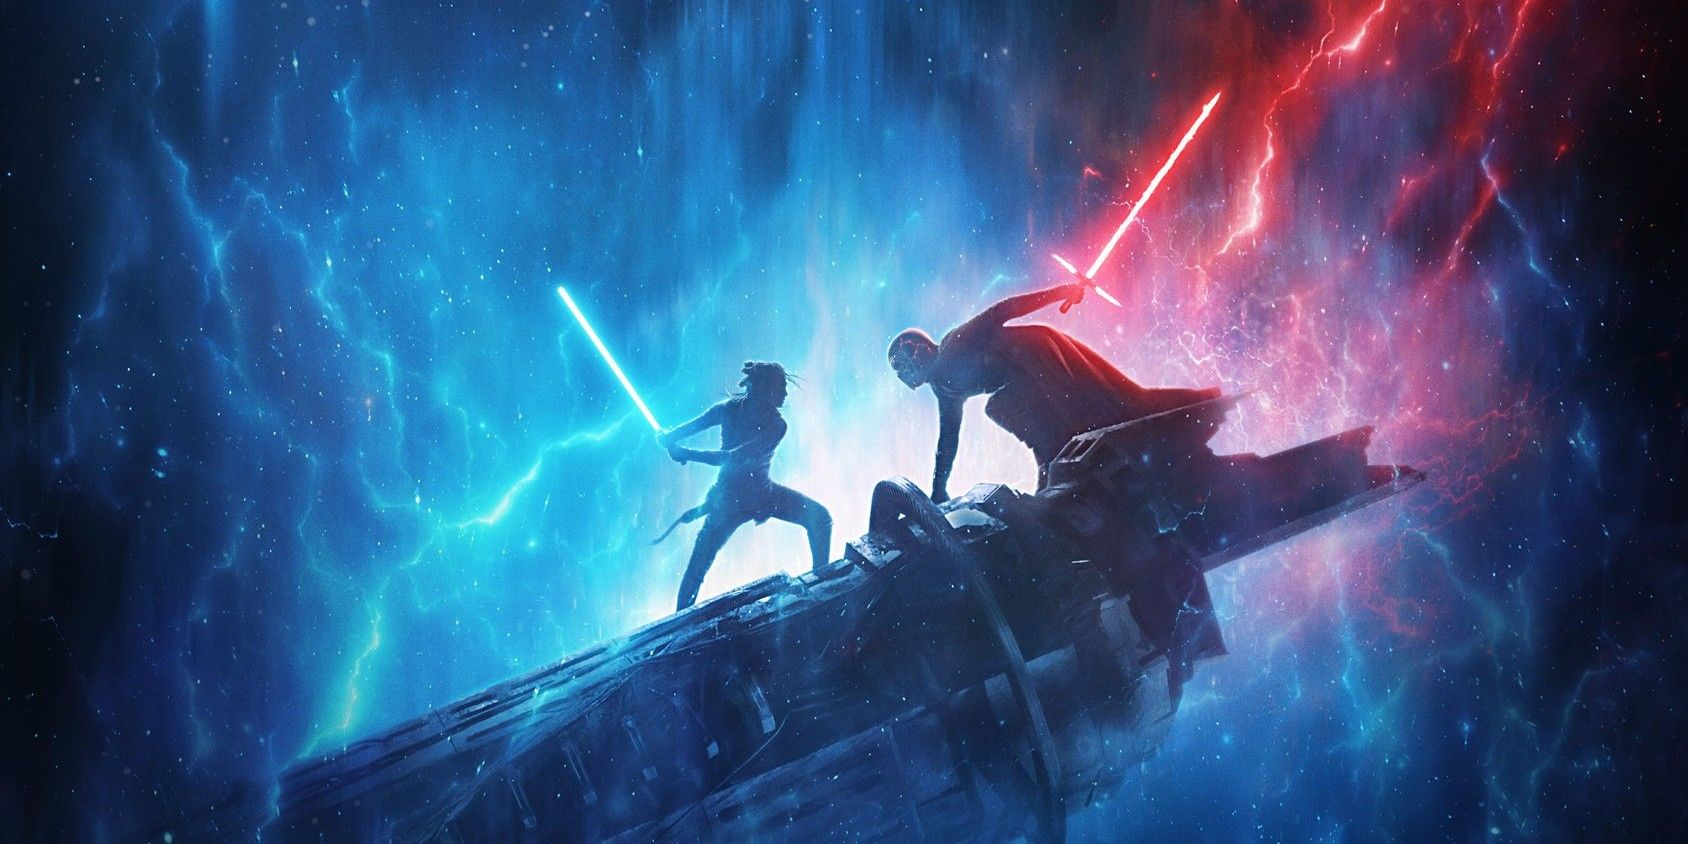 New Star Wars 9 Trailer Officially Rated for Release